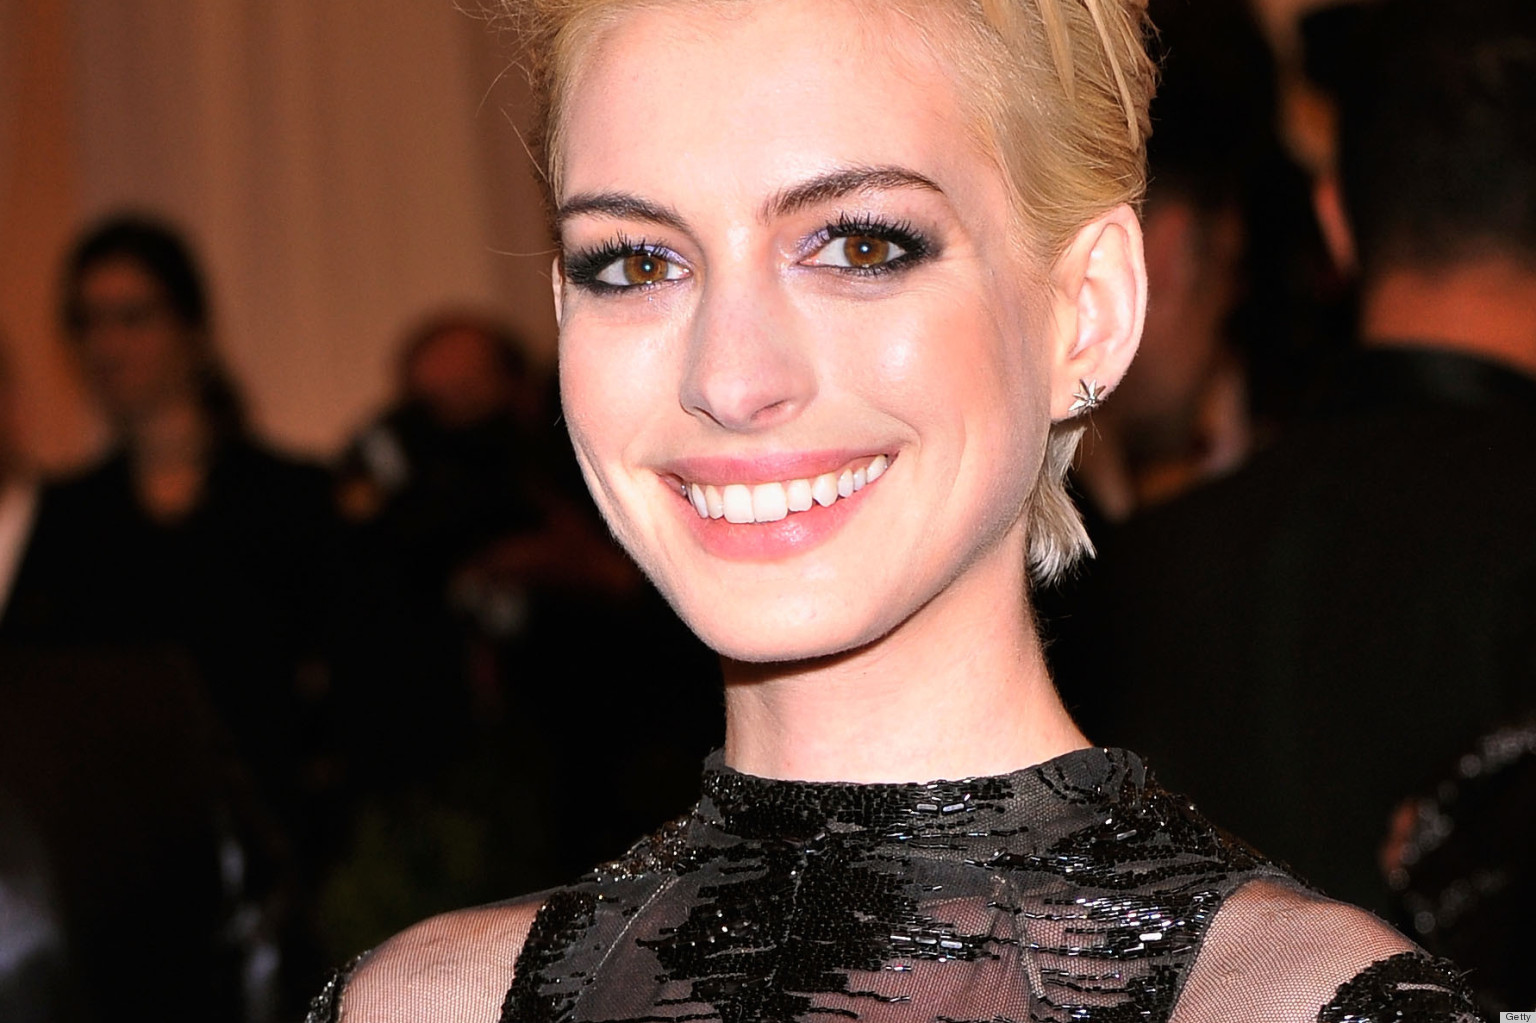 Anne Hathaways Met Gala 2013 Red Carpet Look Features